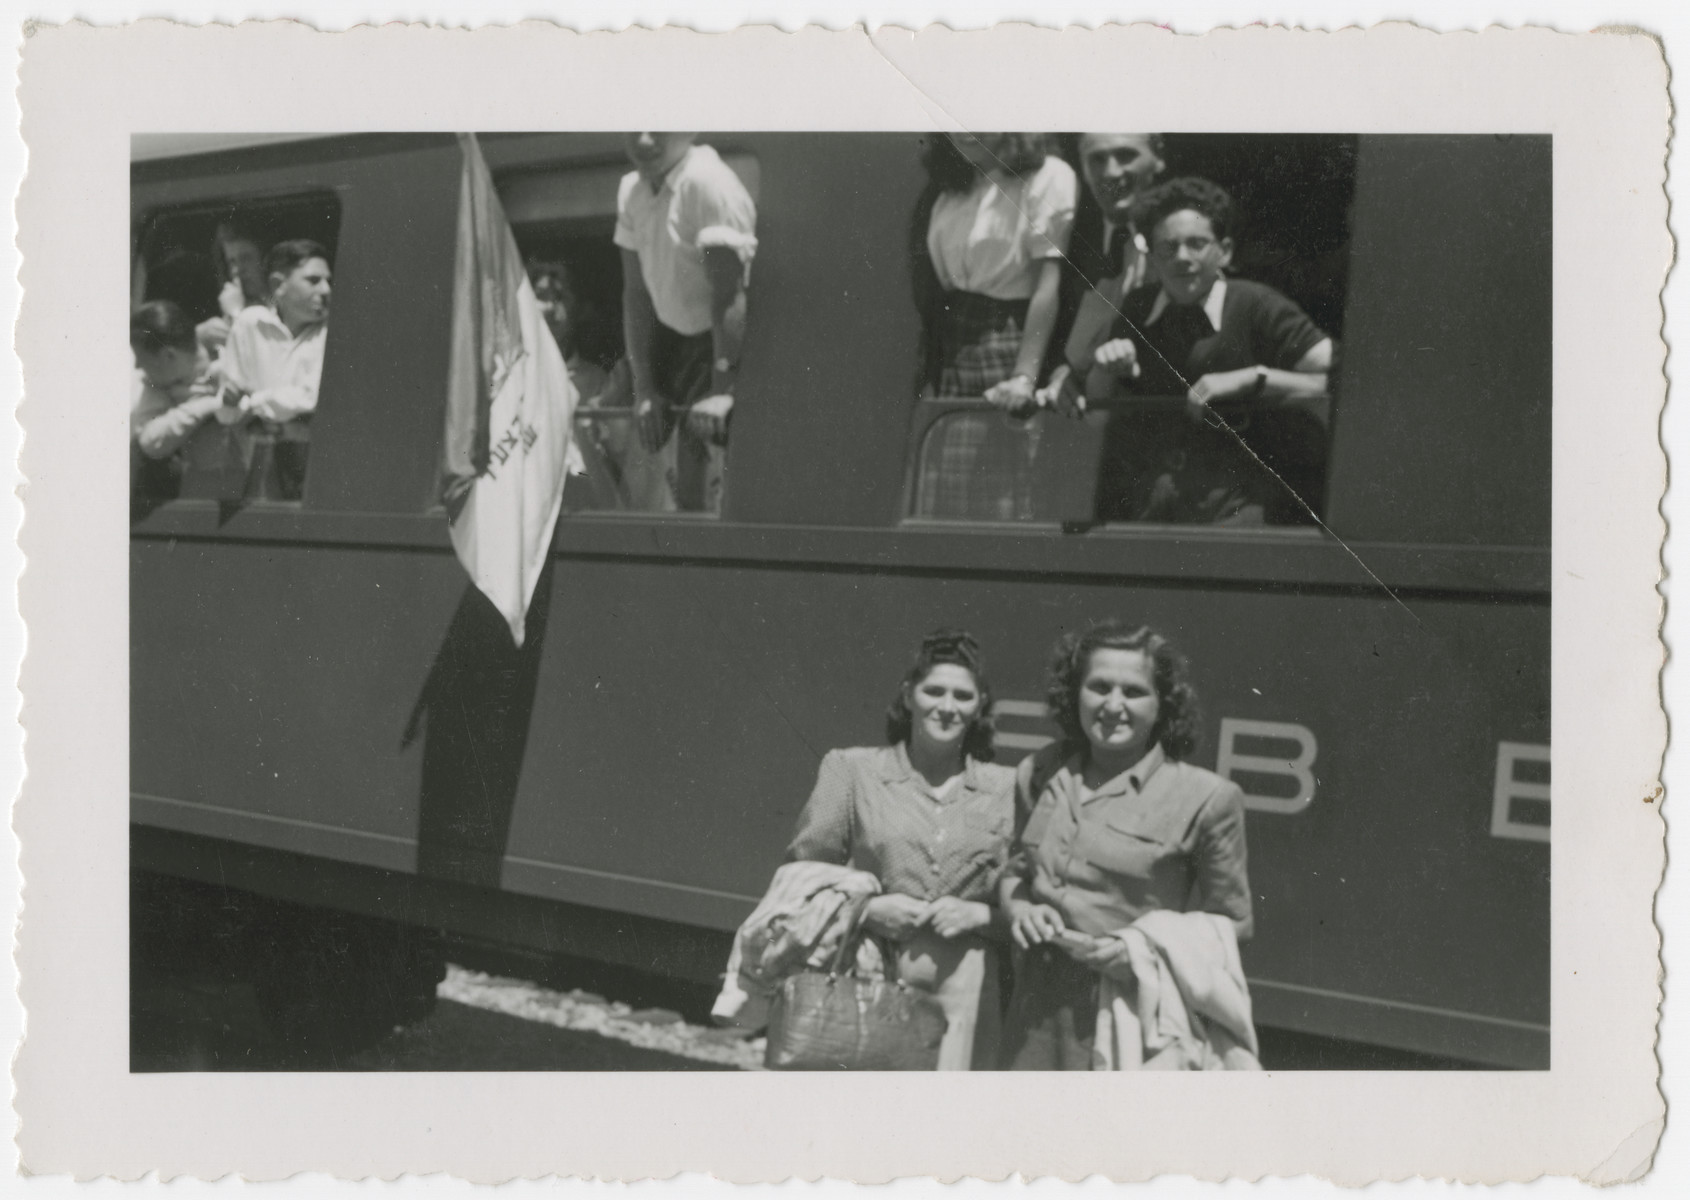 Hungarian Zionists who had come to Switzerland with the Kasztner transport pose inside and outside a train adorned with a Zionist flag.  Eva Weinberger is pictured in the front right, and Rosa Schiff is in the front left..